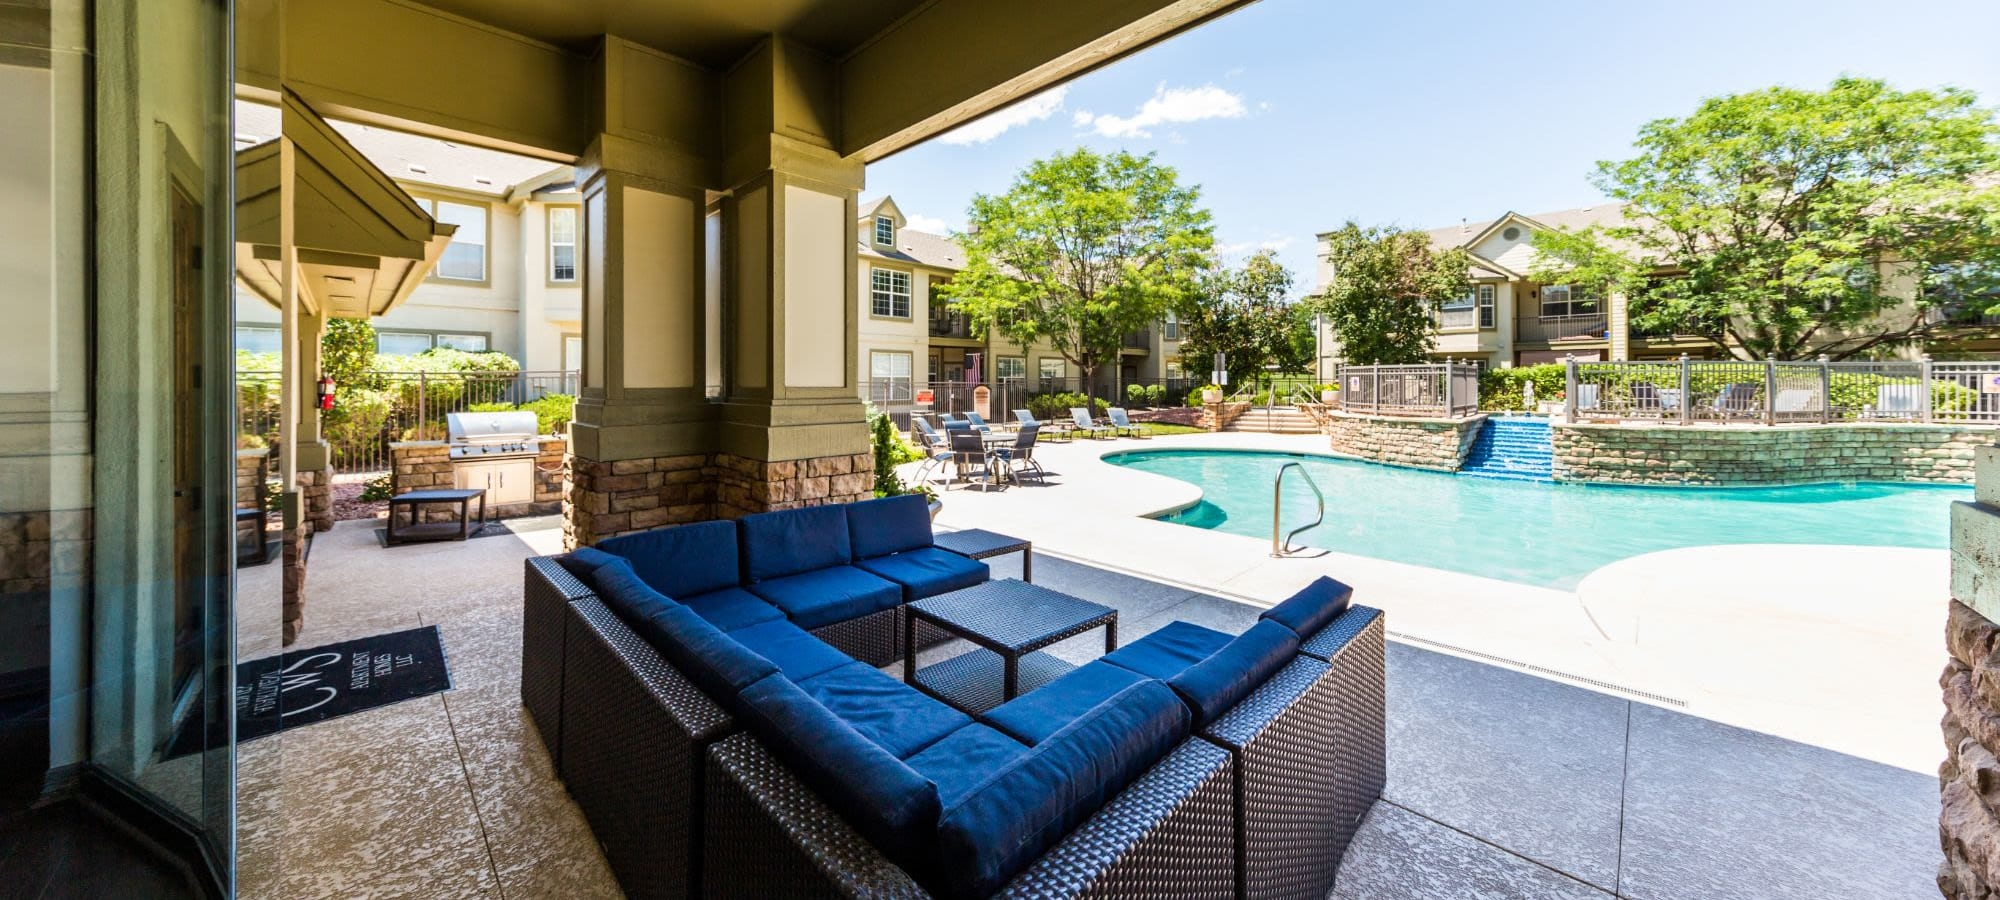 Amenities at Marquis at Town Centre in Broomfield, Colorado